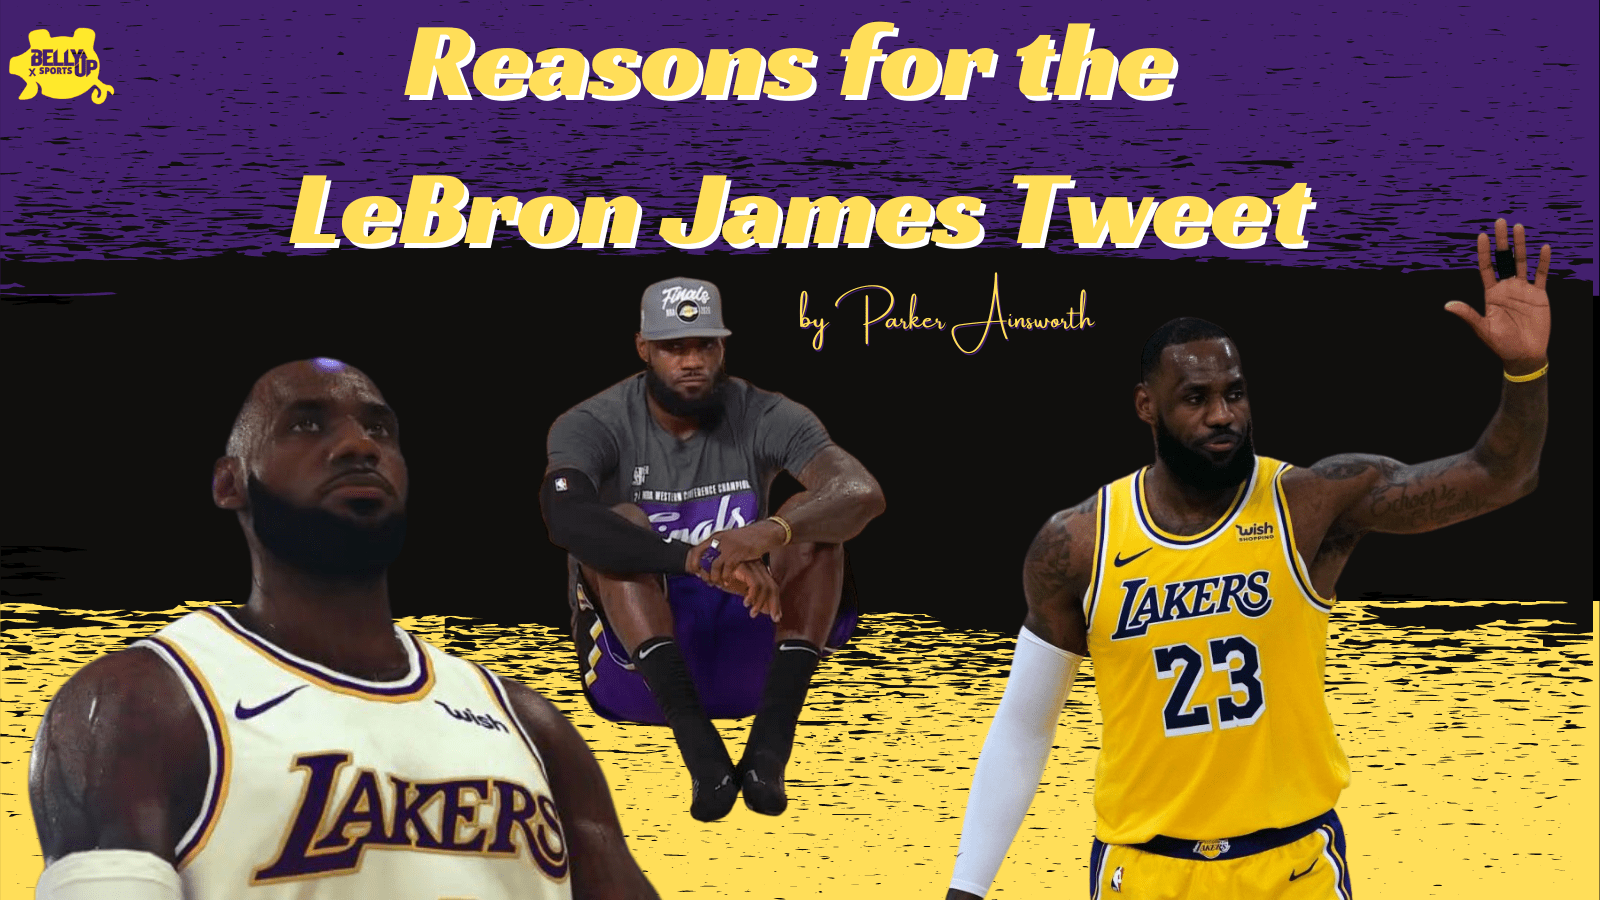 Reasons for the LeBron James Tweet